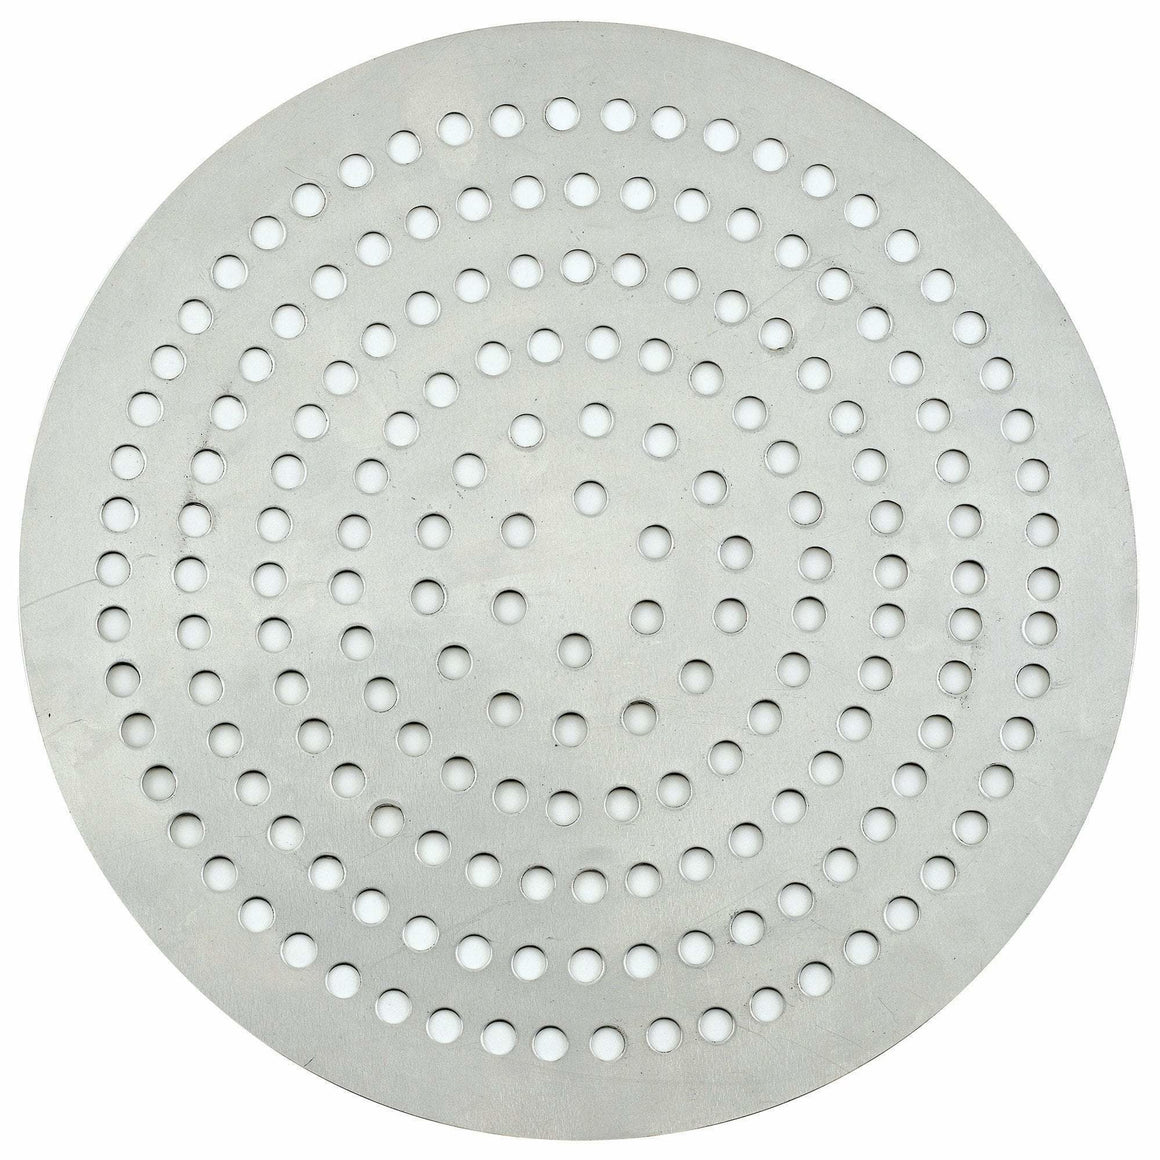 "Winco - APZP-8SP - Aluminum Super-Perforated Pizza Disk, 8"" Diameter, 114 Holes - Pizza Supplies"